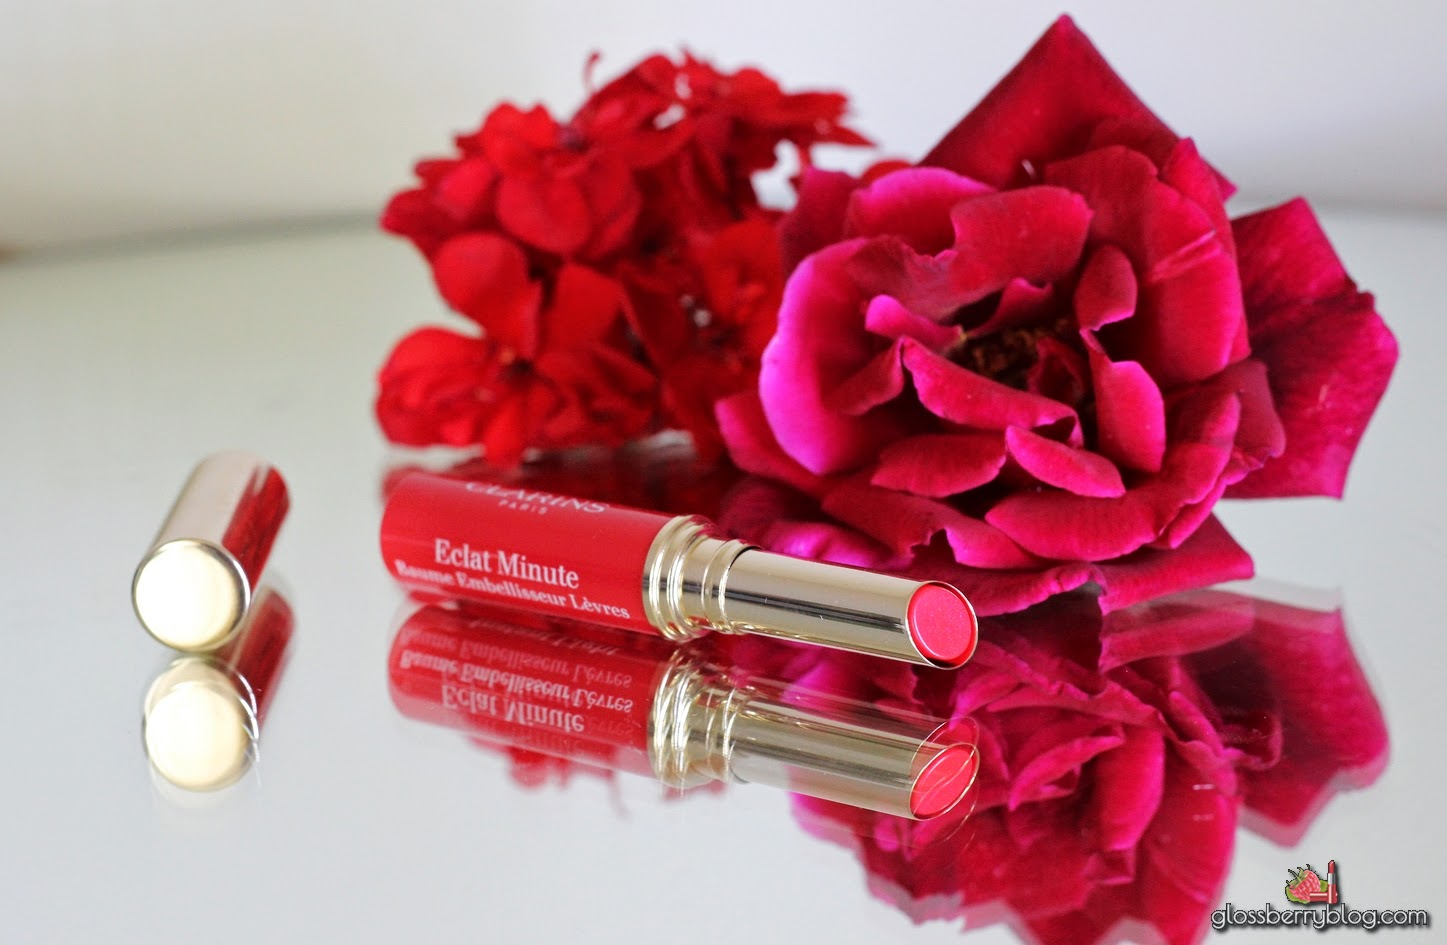 Clarins Instant Light Natural Lip Balm Perfector - 05 - Red - Review and Swatches glossberry blog eclat minute beauty blog lips lipswatches sheer colors 5 red baume on lipswatch swatches גלוסברי בלוג איפור קלרינס שפתון באלם איפור המלצה recommendations